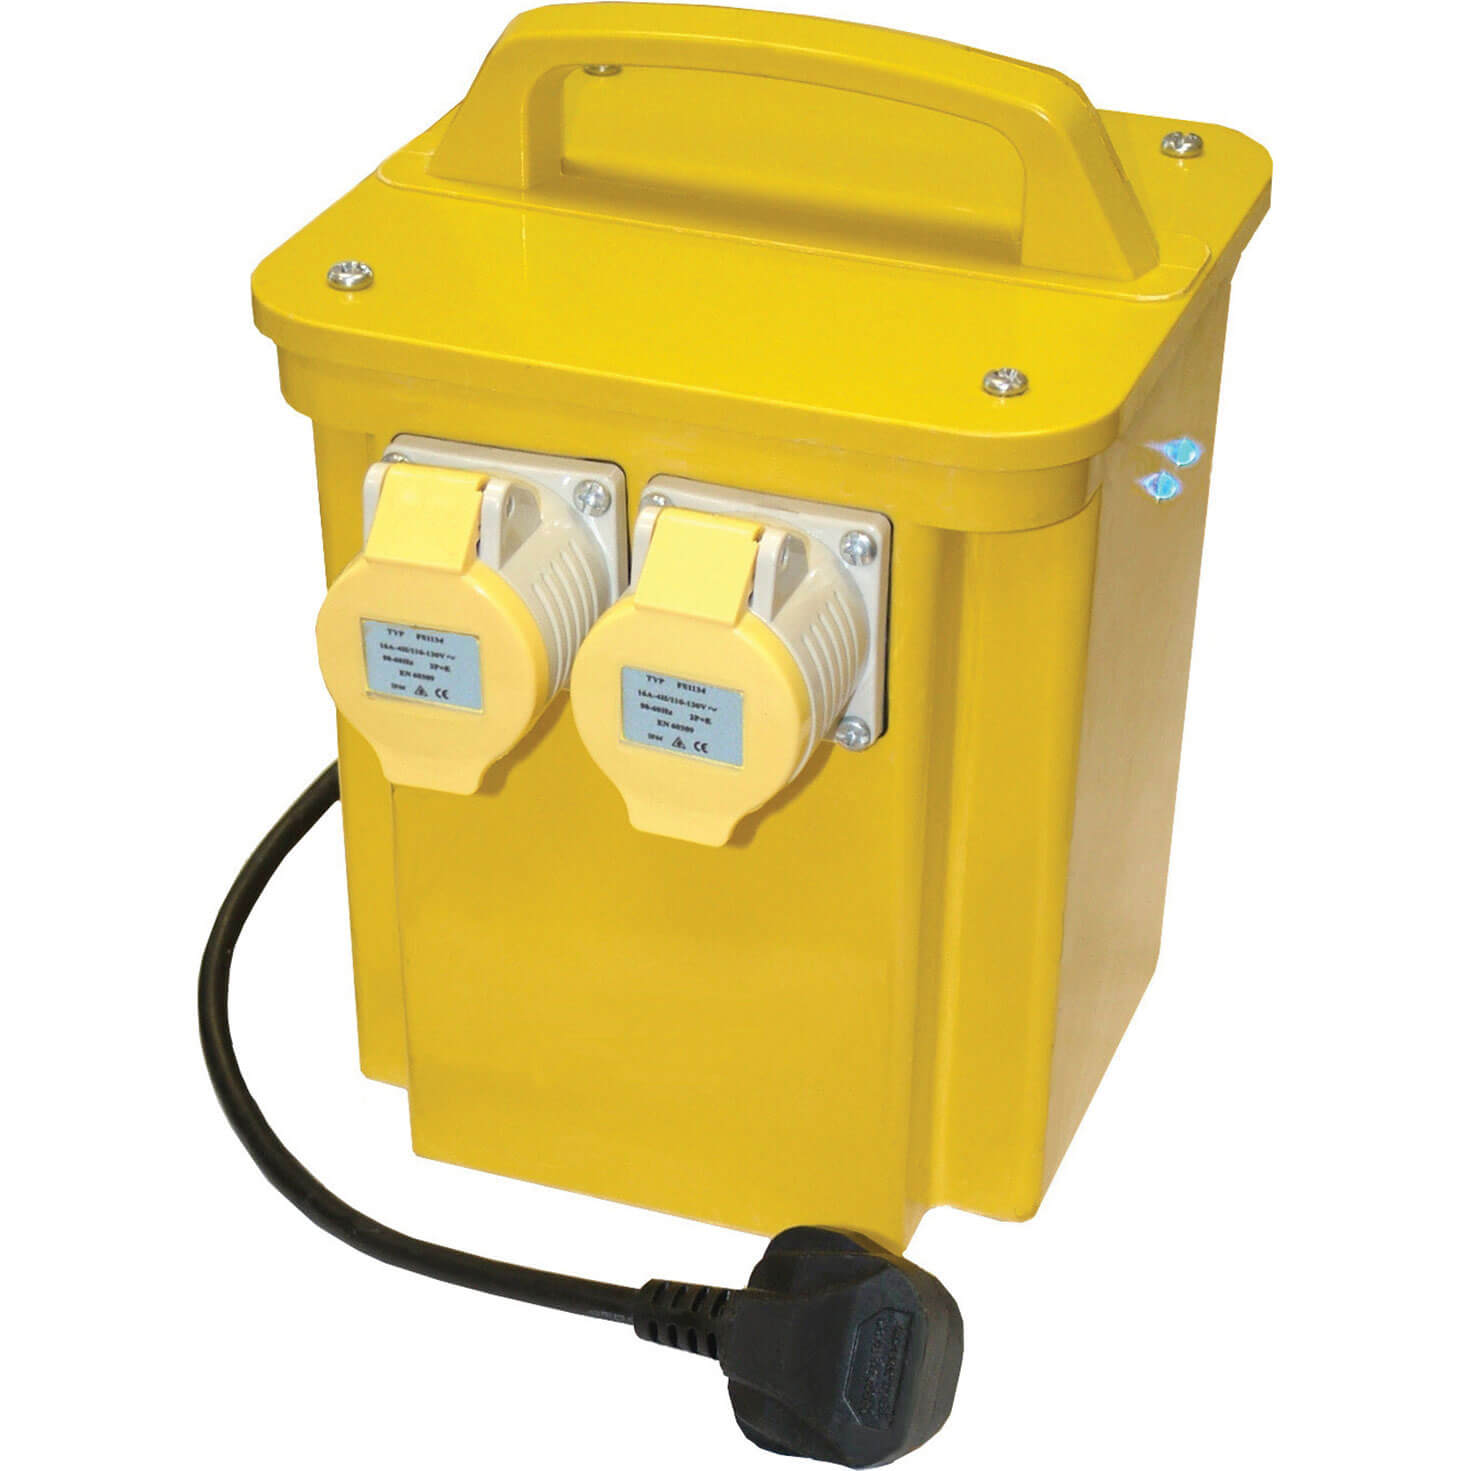 Image of Faithfull 110v Portable Transformer 3.3Kva 240v